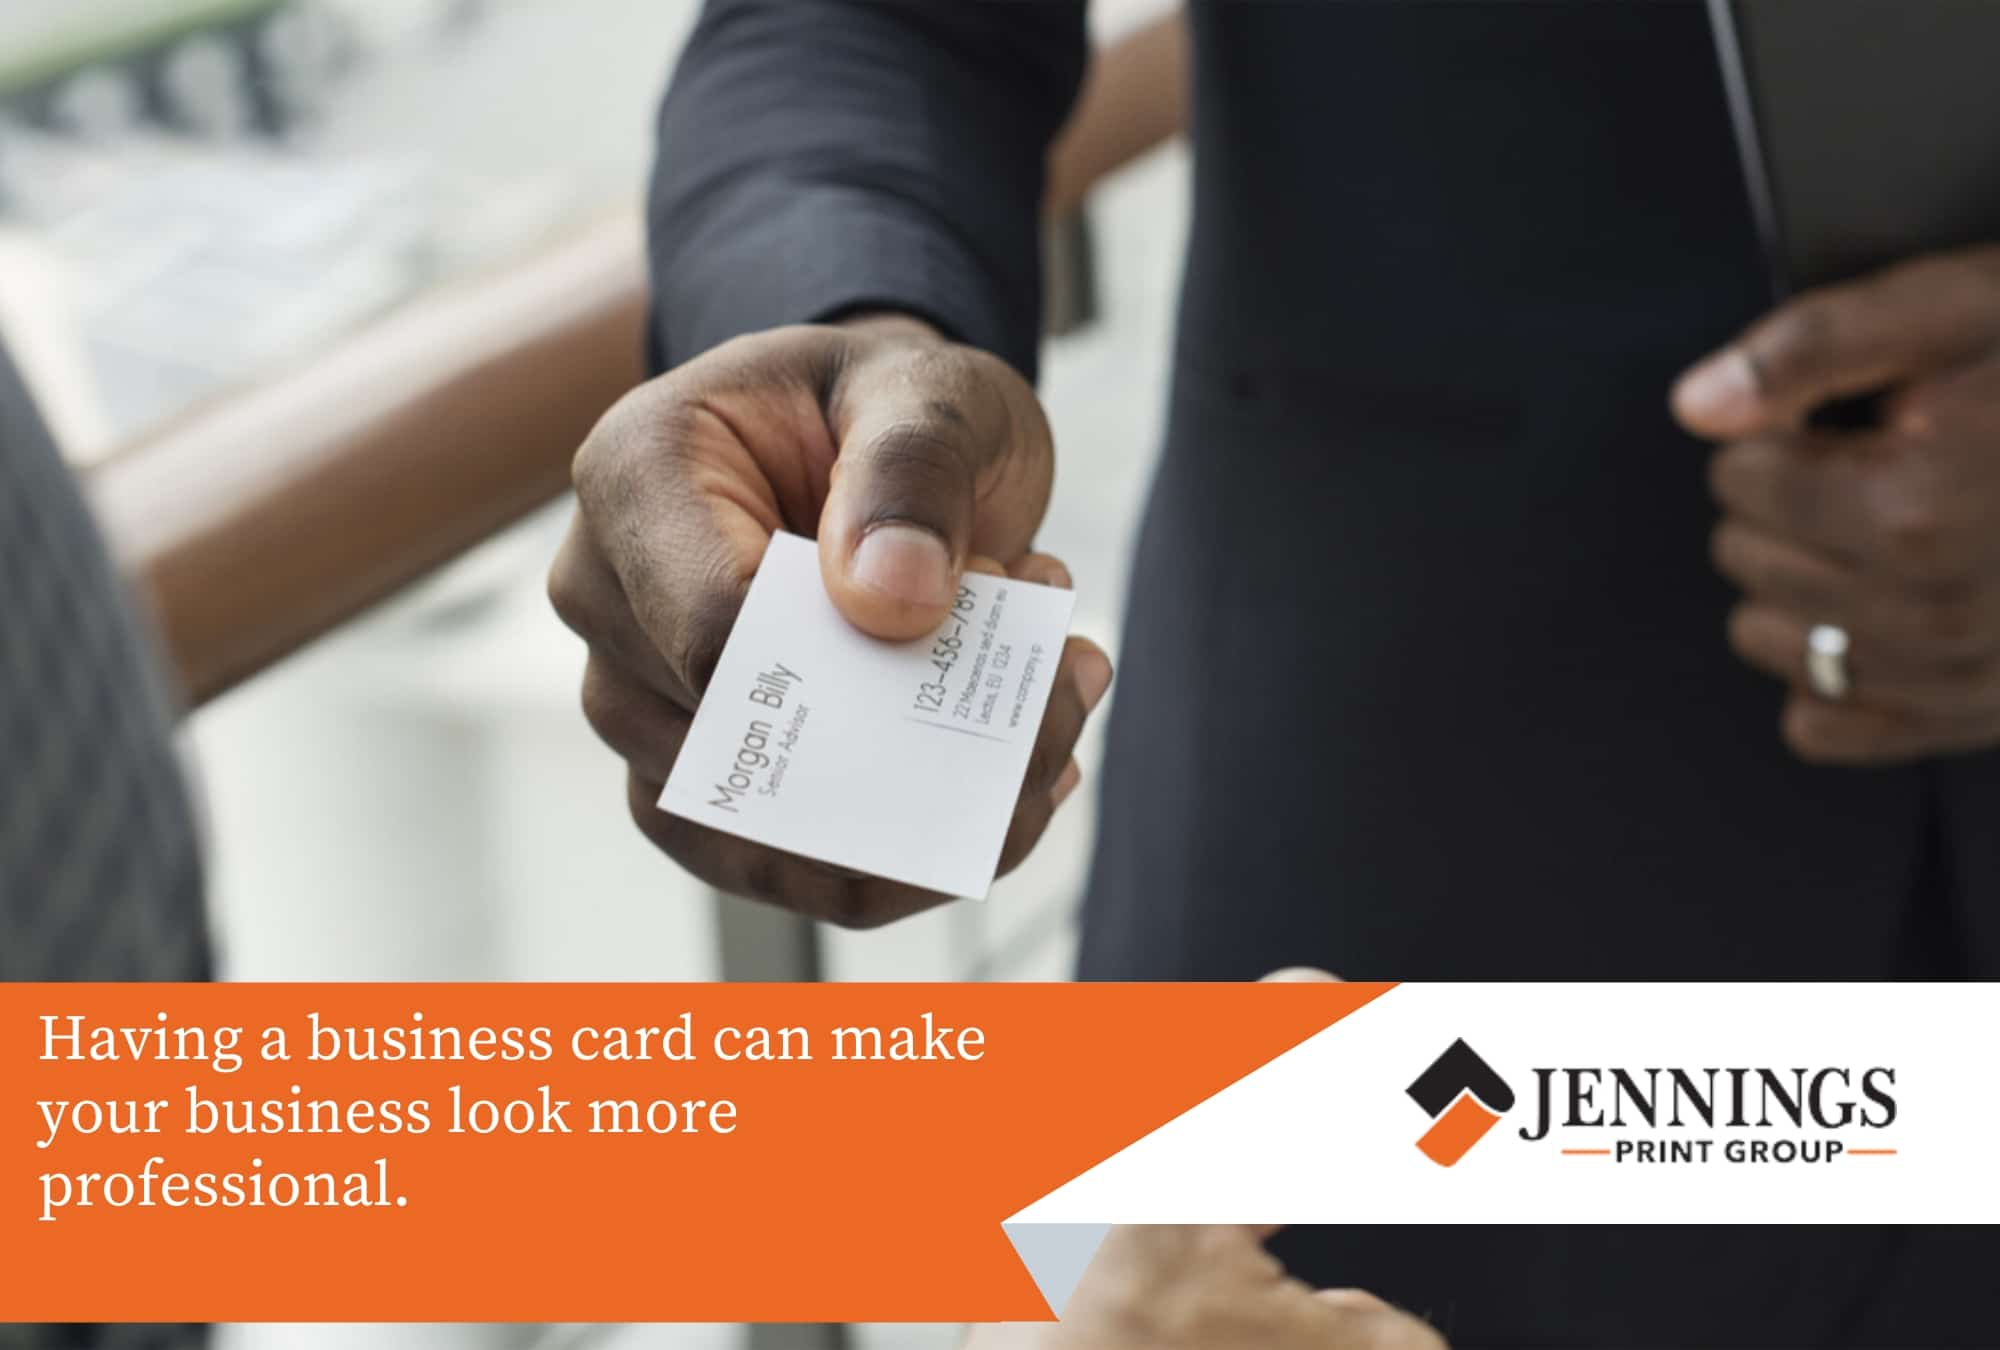 business cards make your business more professional